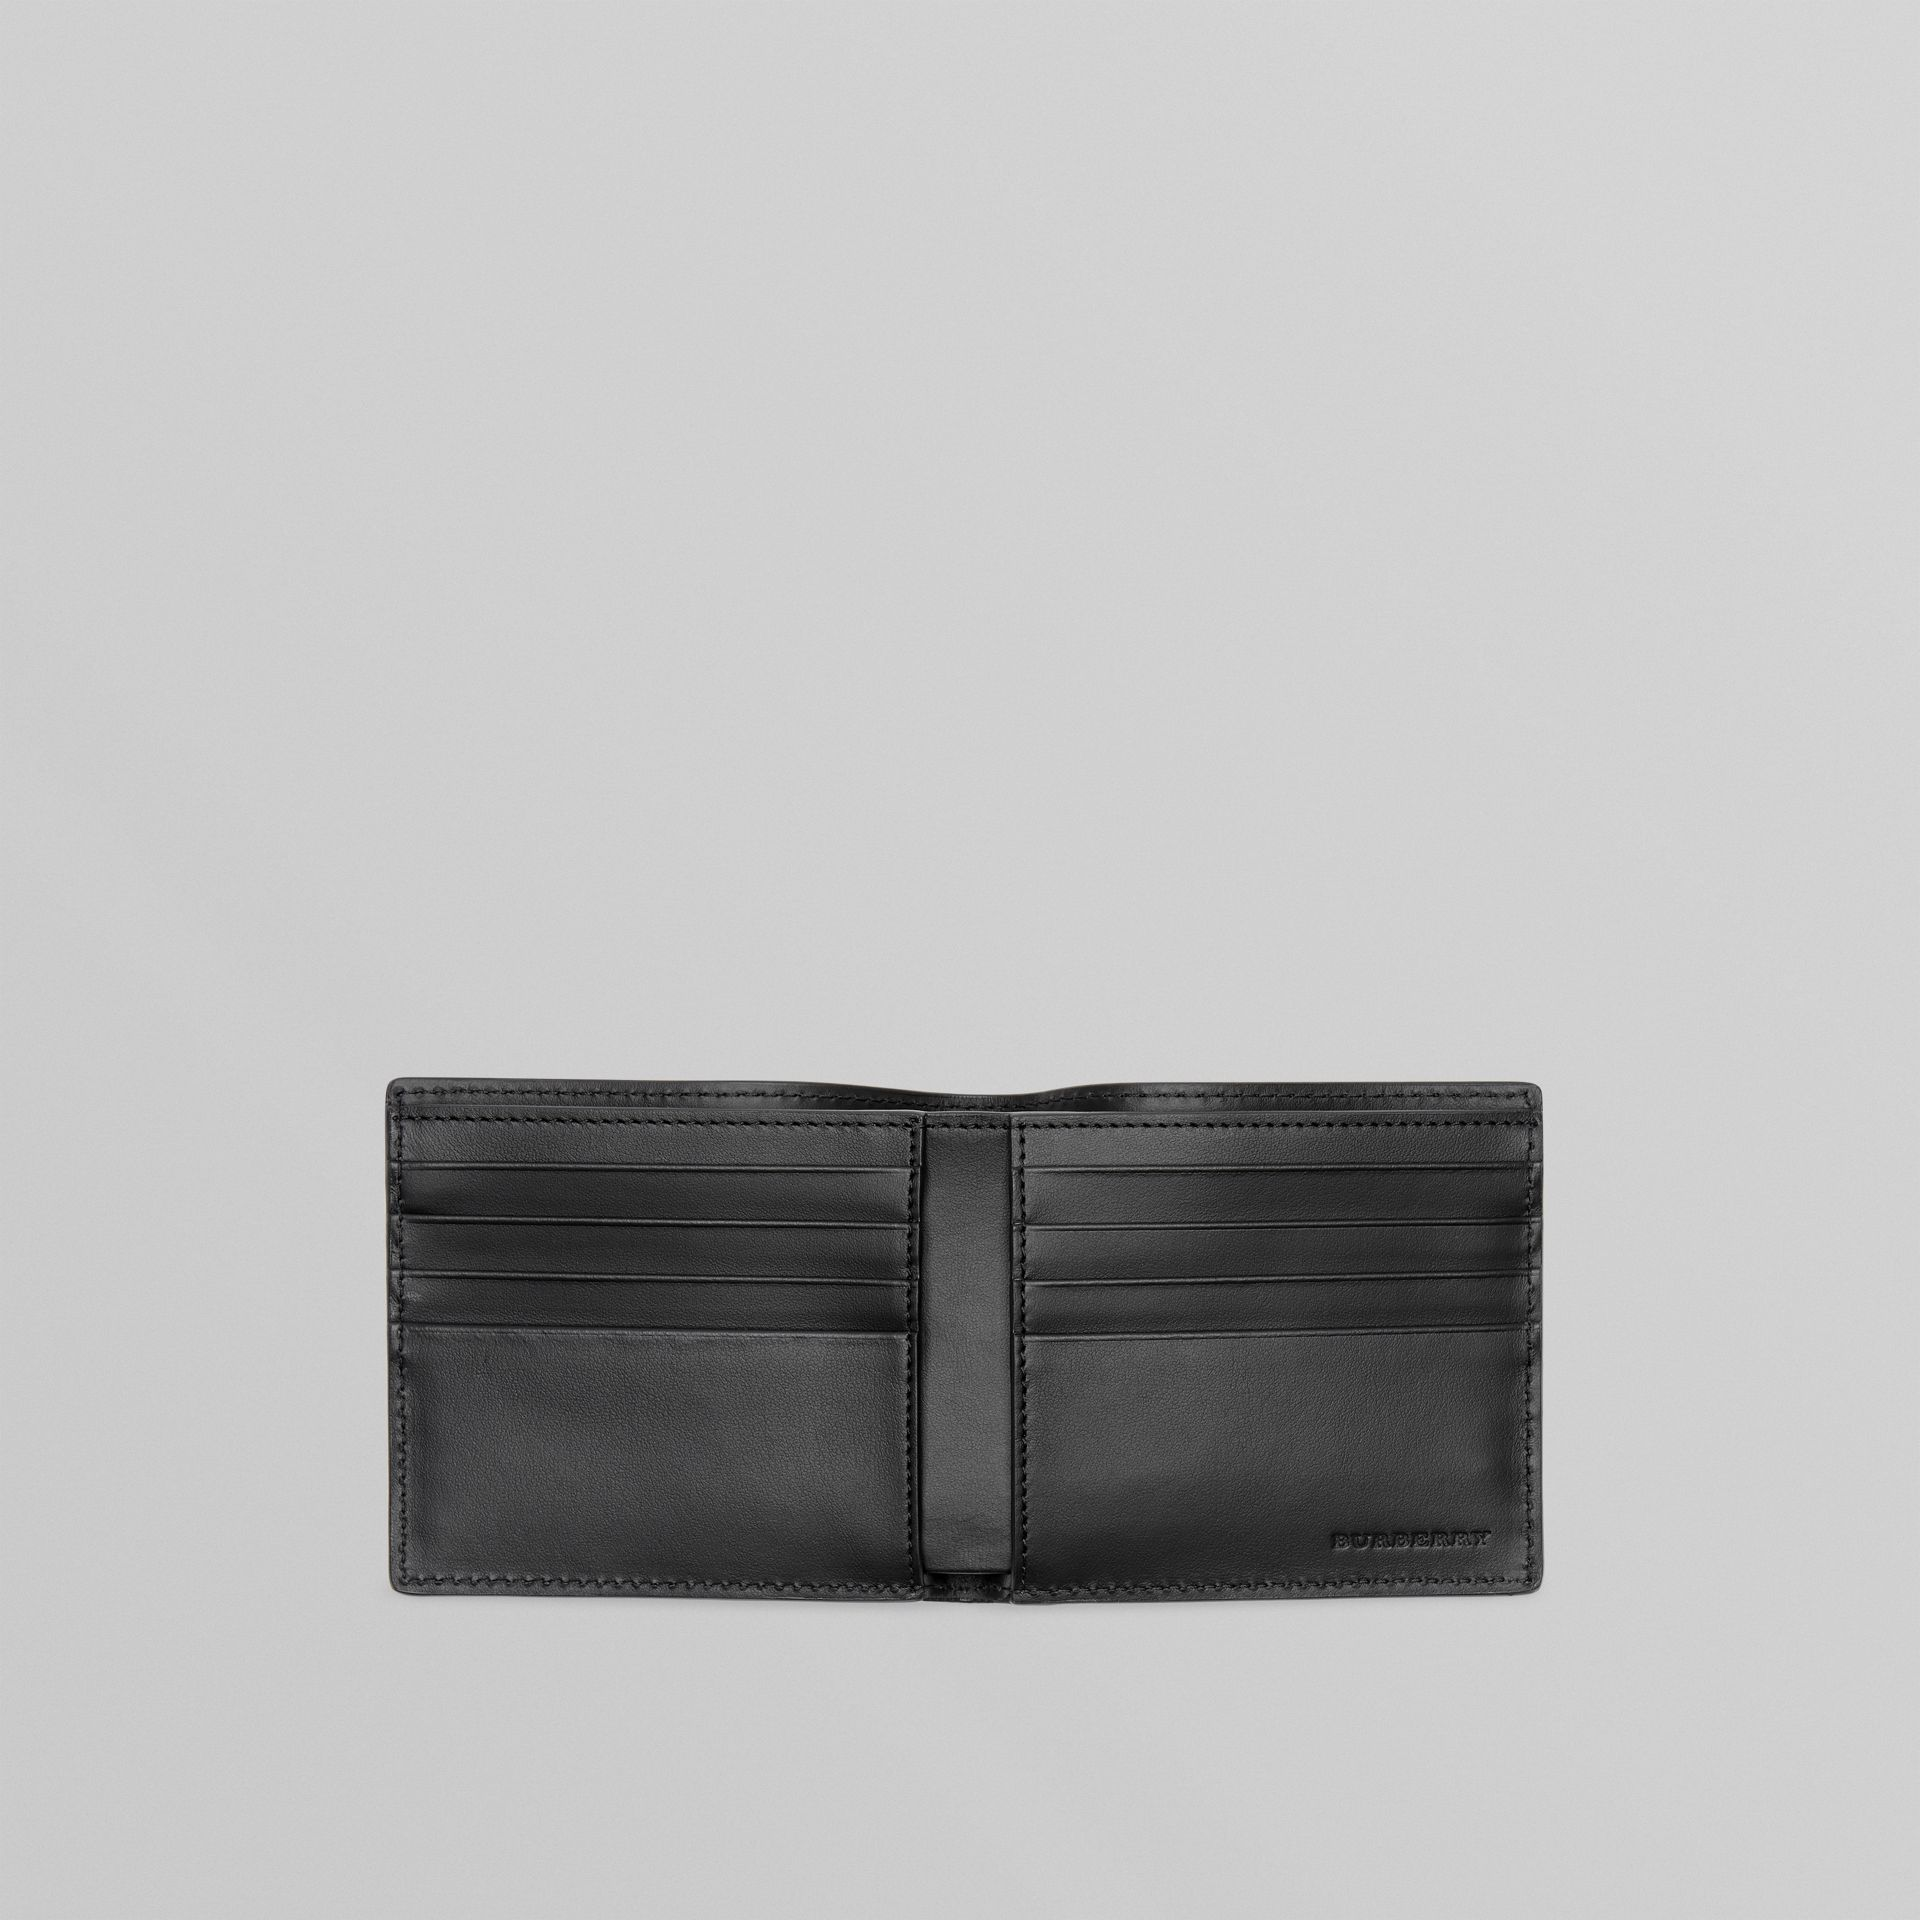 Perforated Logo Leather International Bifold Wallet in Black - Men | Burberry Canada - gallery image 3